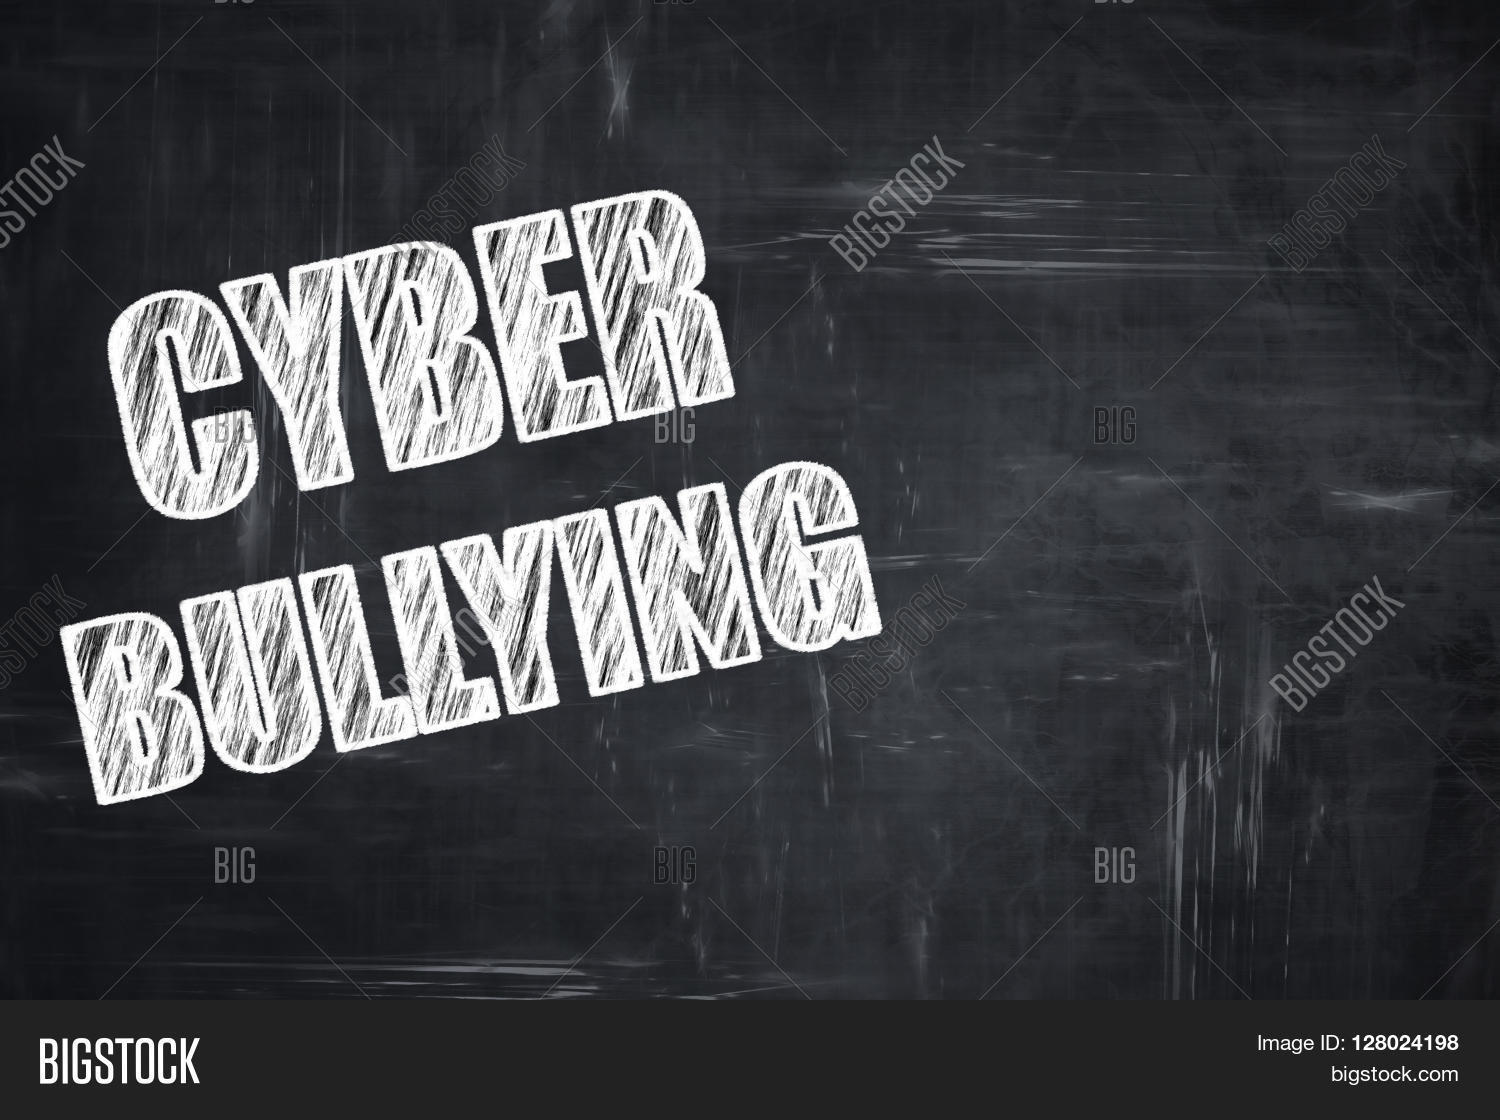 background of the study about bullying Start studying making tough choices: connecting to a fight against bullying learn vocabulary, terms, and more with flashcards, games, and other study tools.